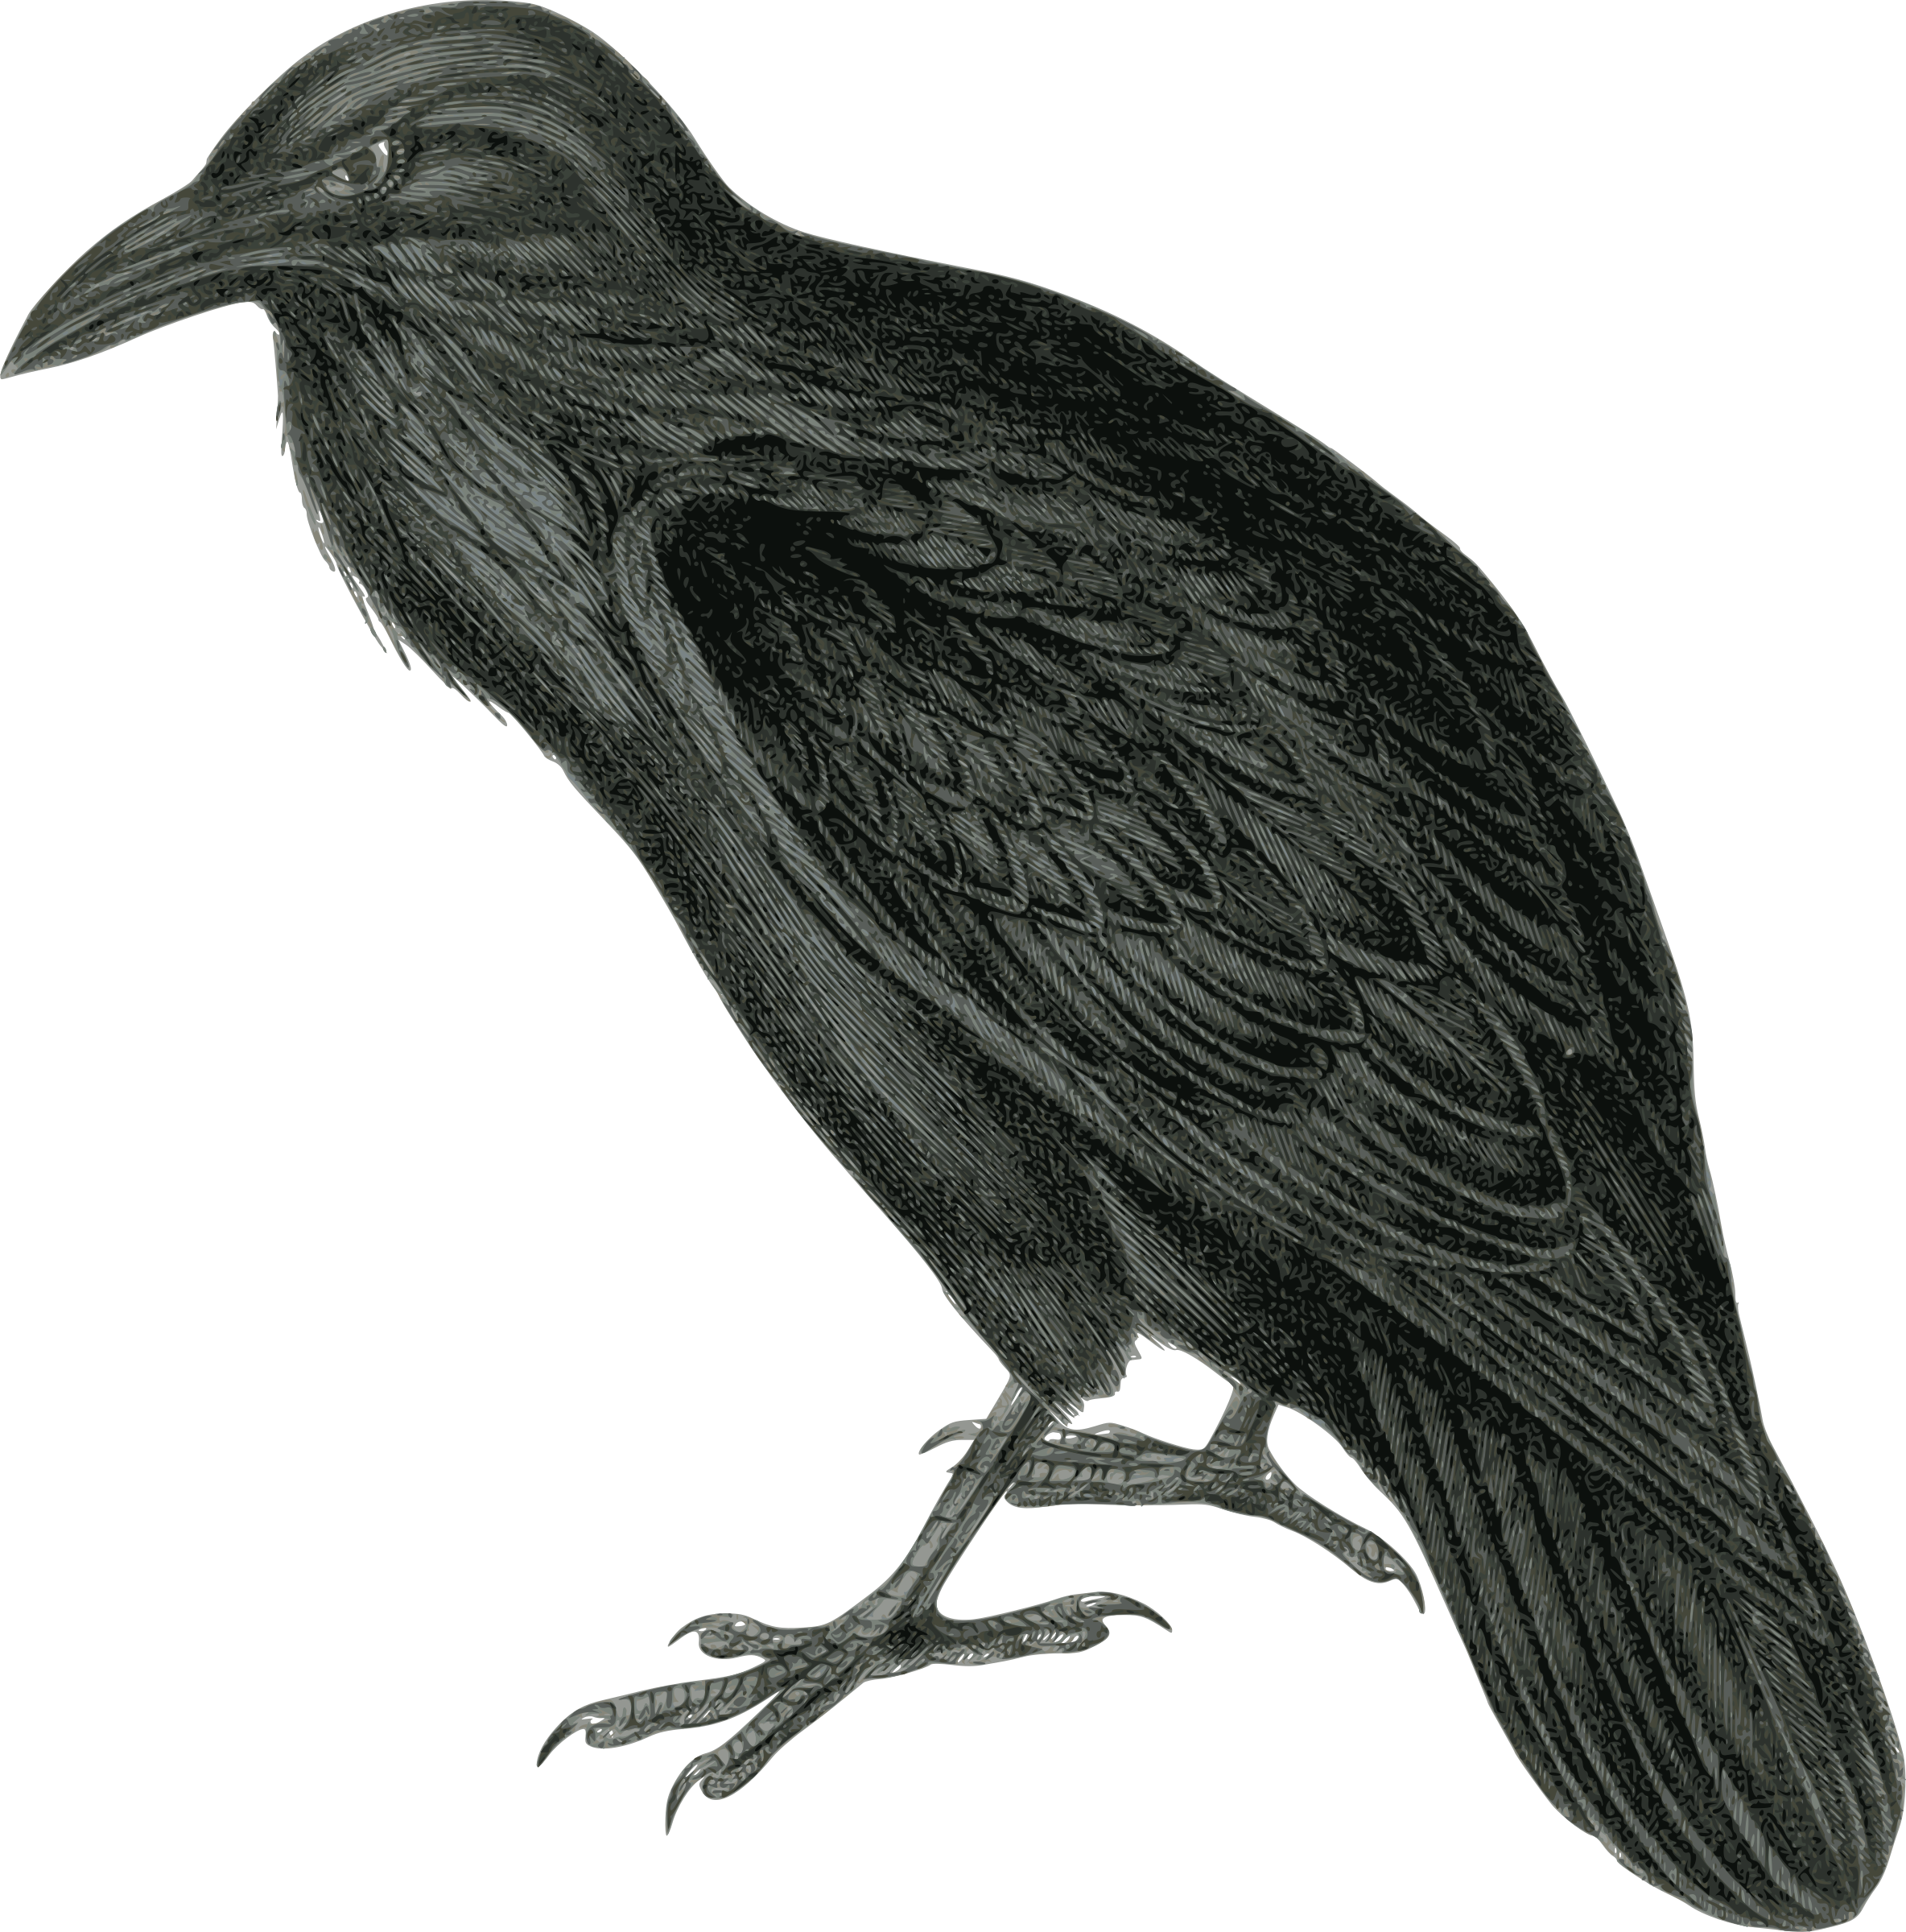 Raven vector clipart png library Raven Vector Clipart image - Free stock photo - Public ... png library